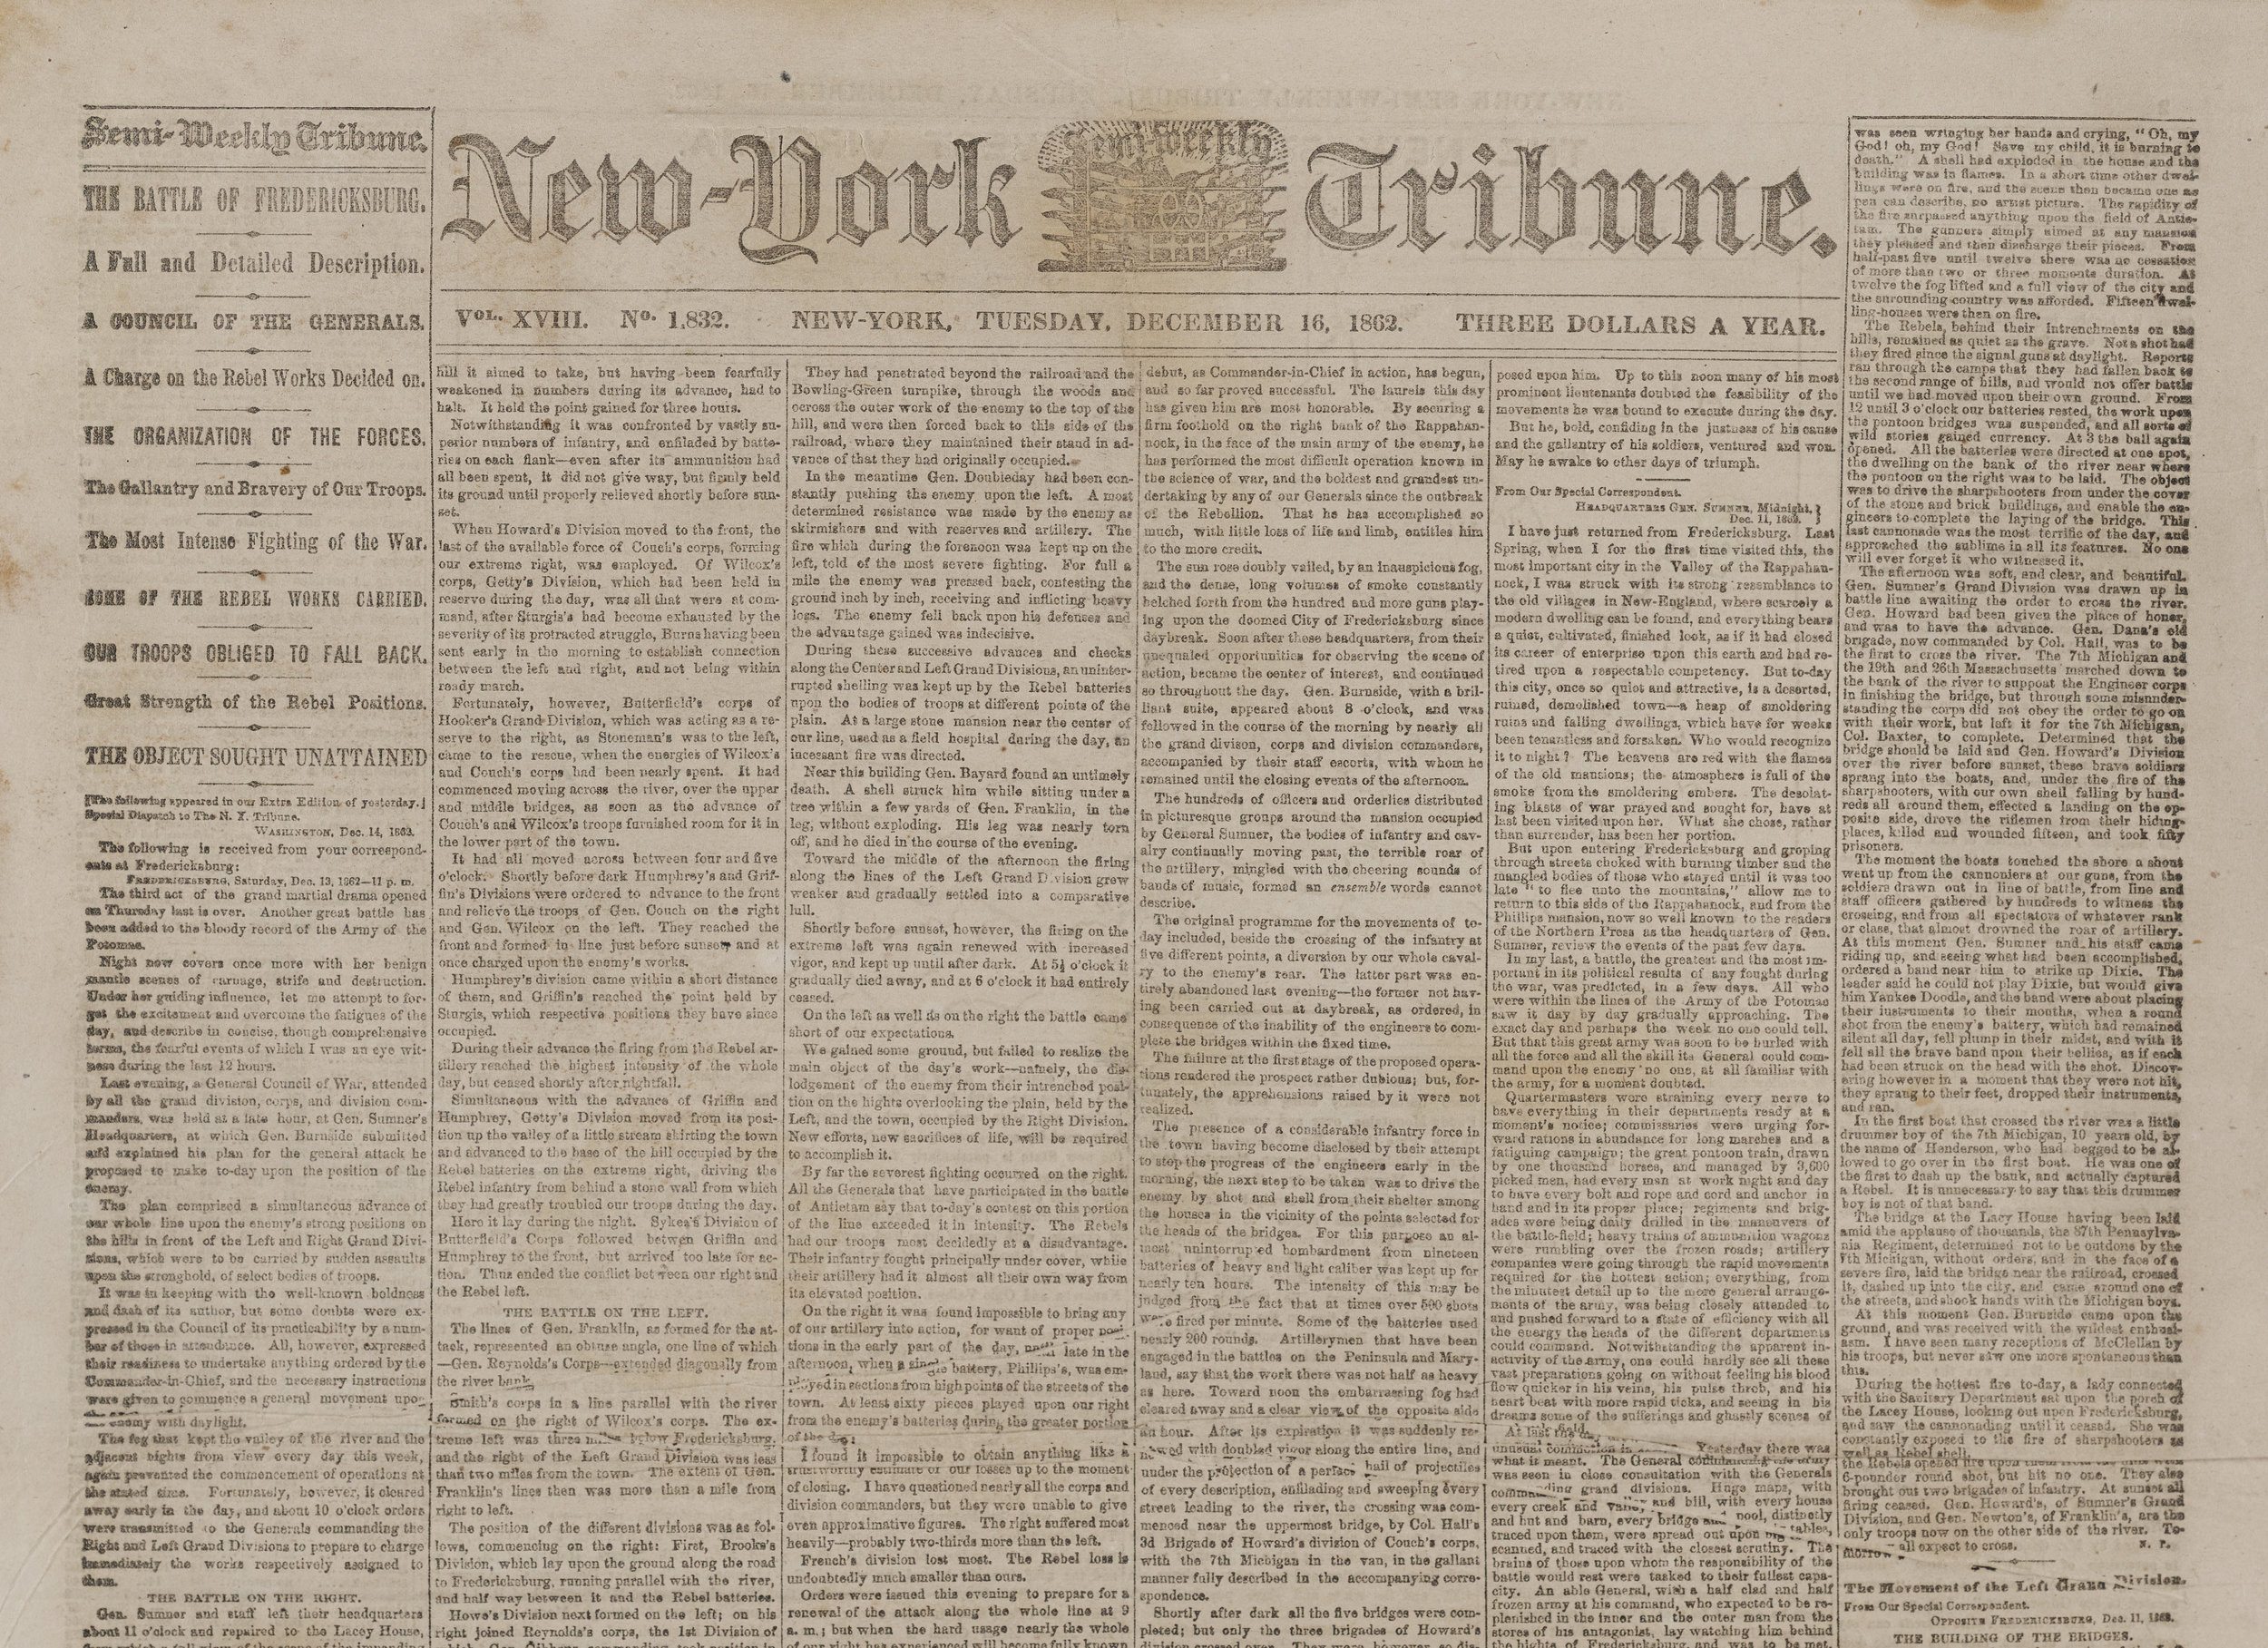 The December 16, 1862 edition of the  New-York Semi-Weekly Tribune  reported on the Battle of Fredericksburg.